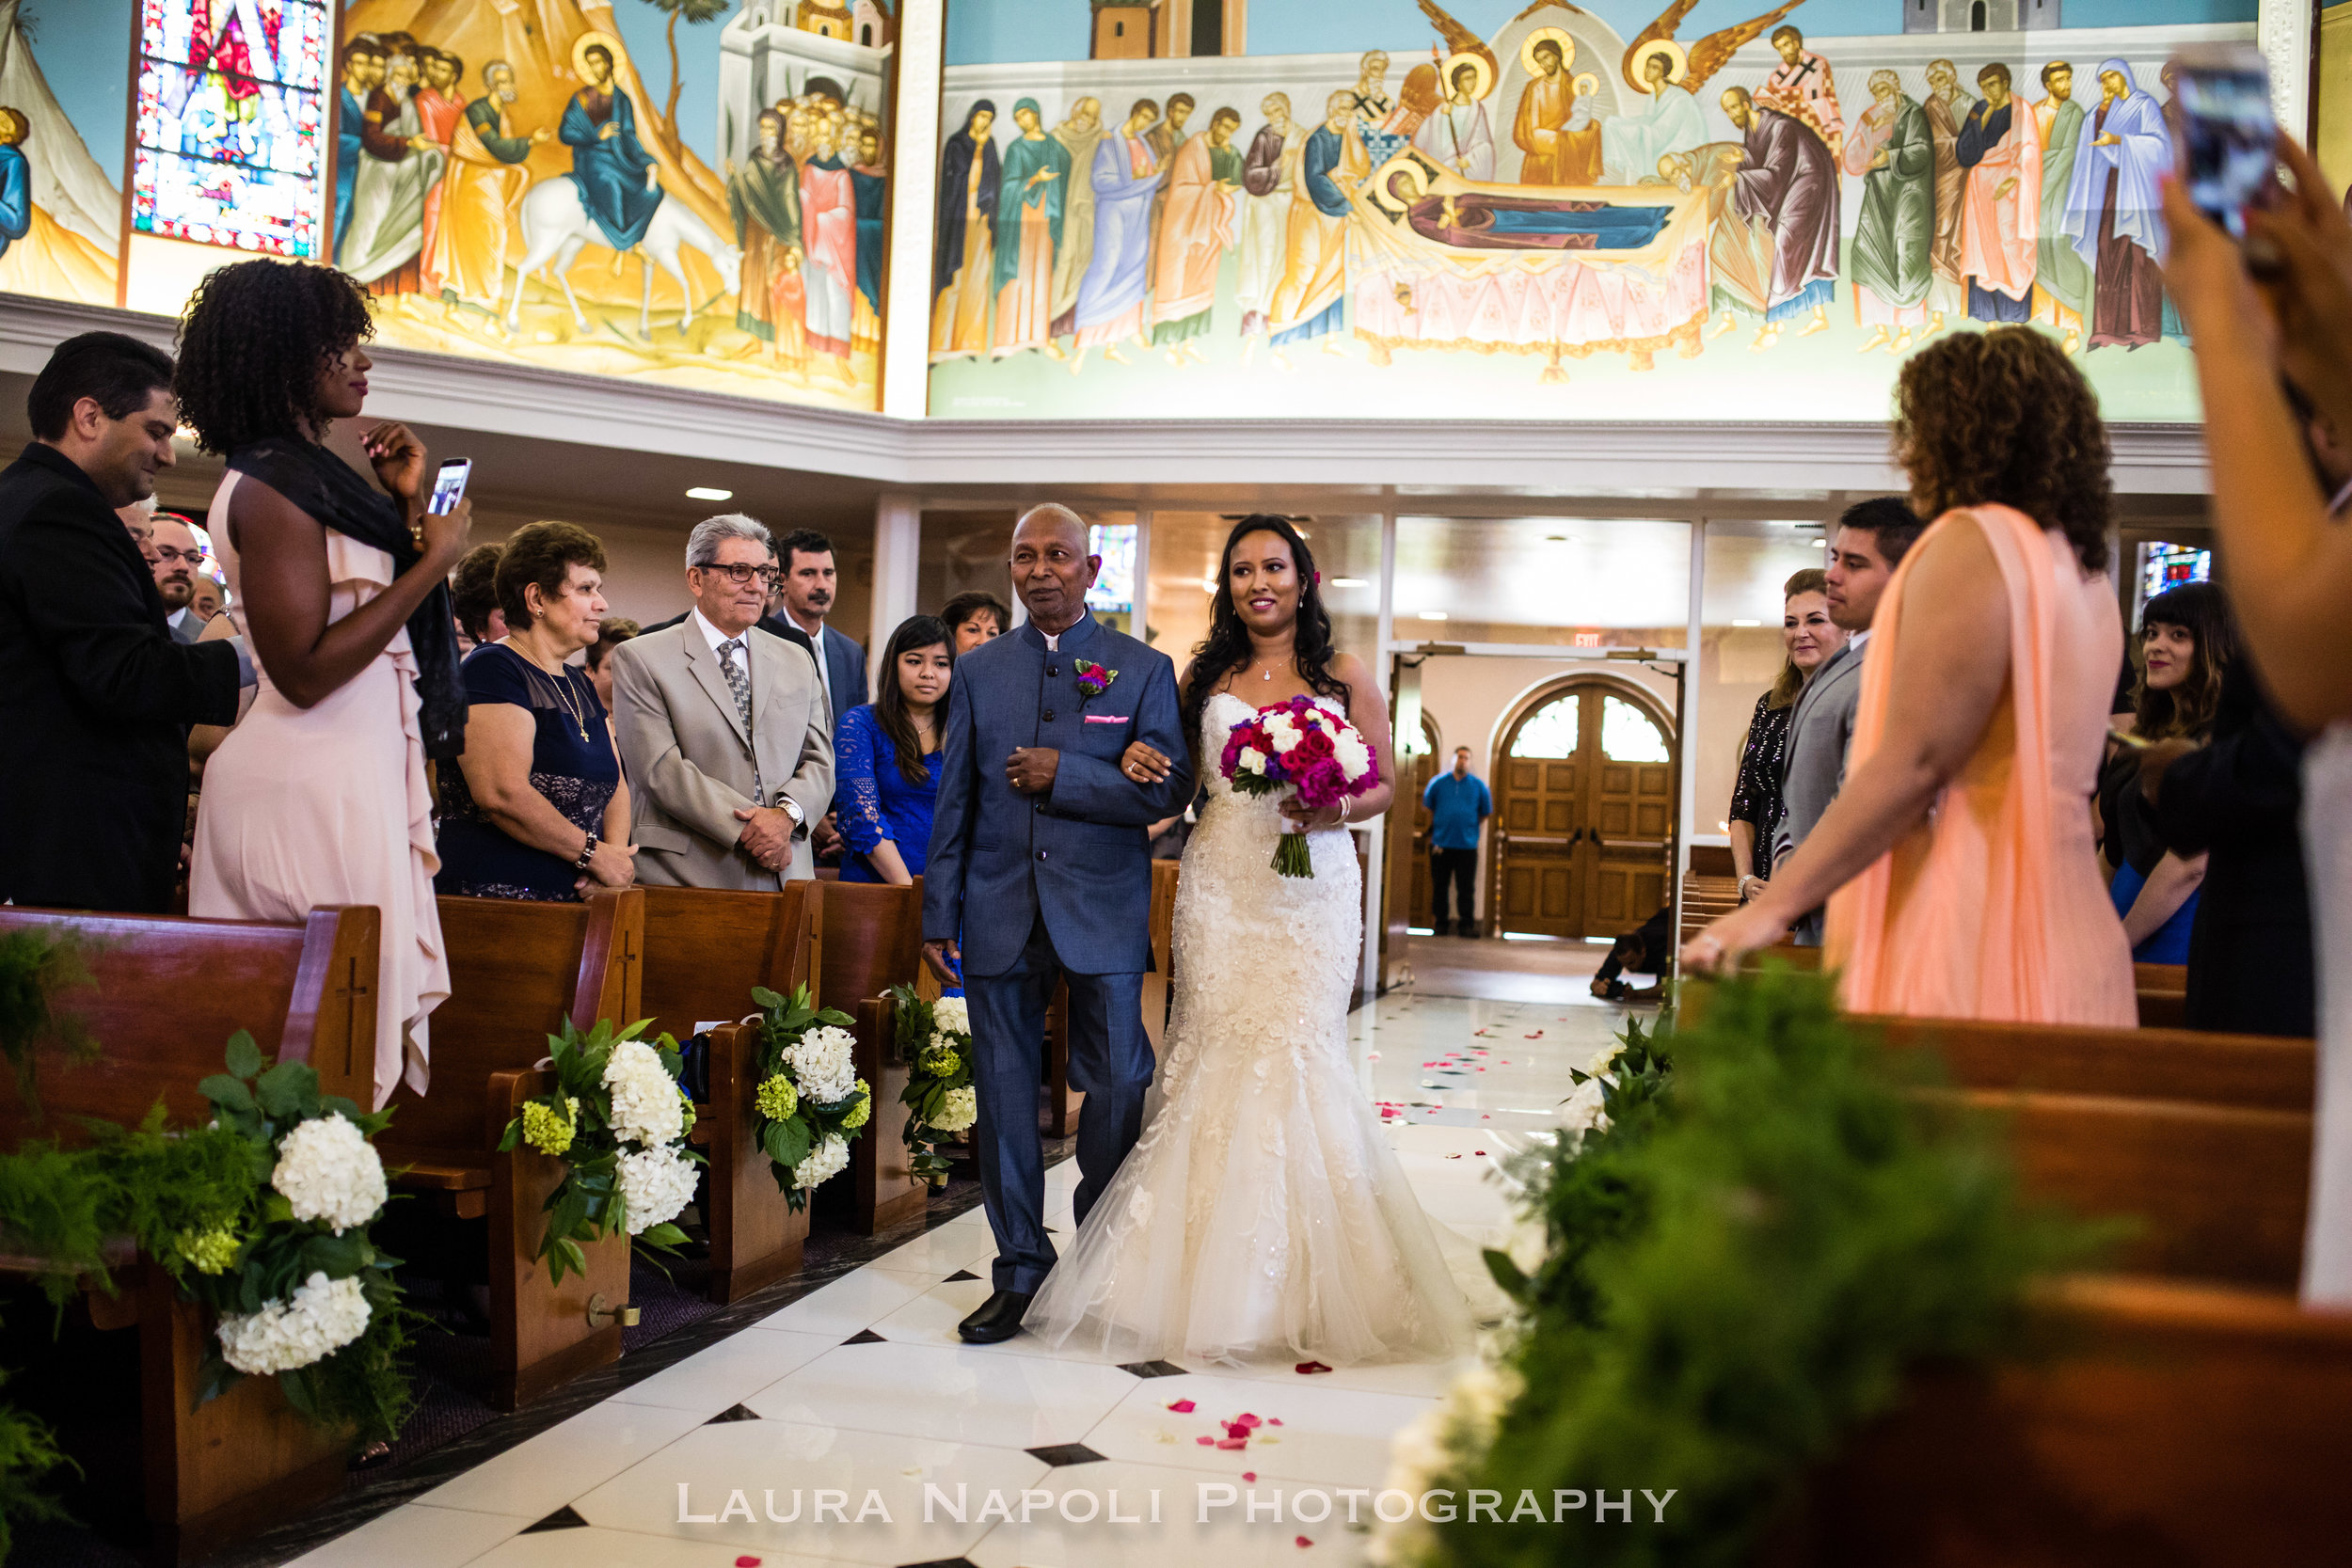 Scotlandrungolfclubweddingsouthjerseyweddingphotographer -19.jpg